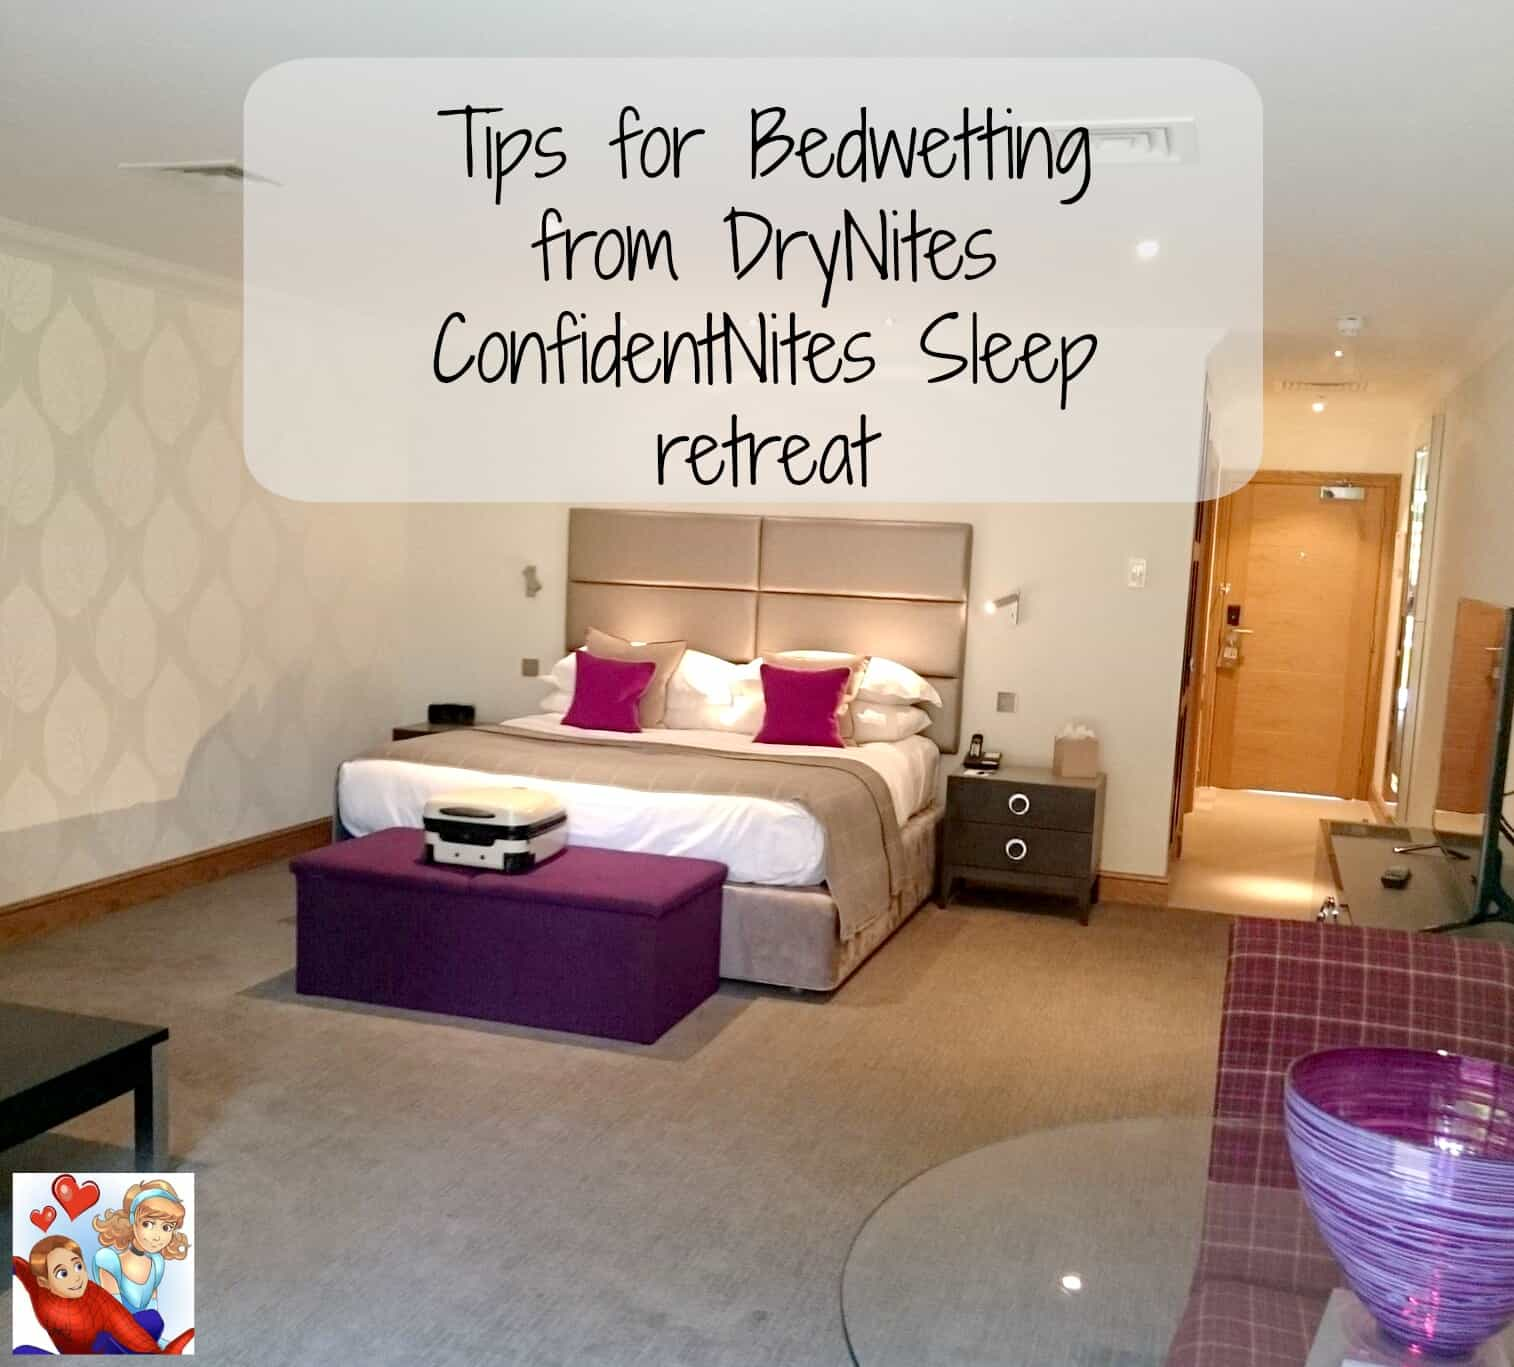 tips for bedwetting